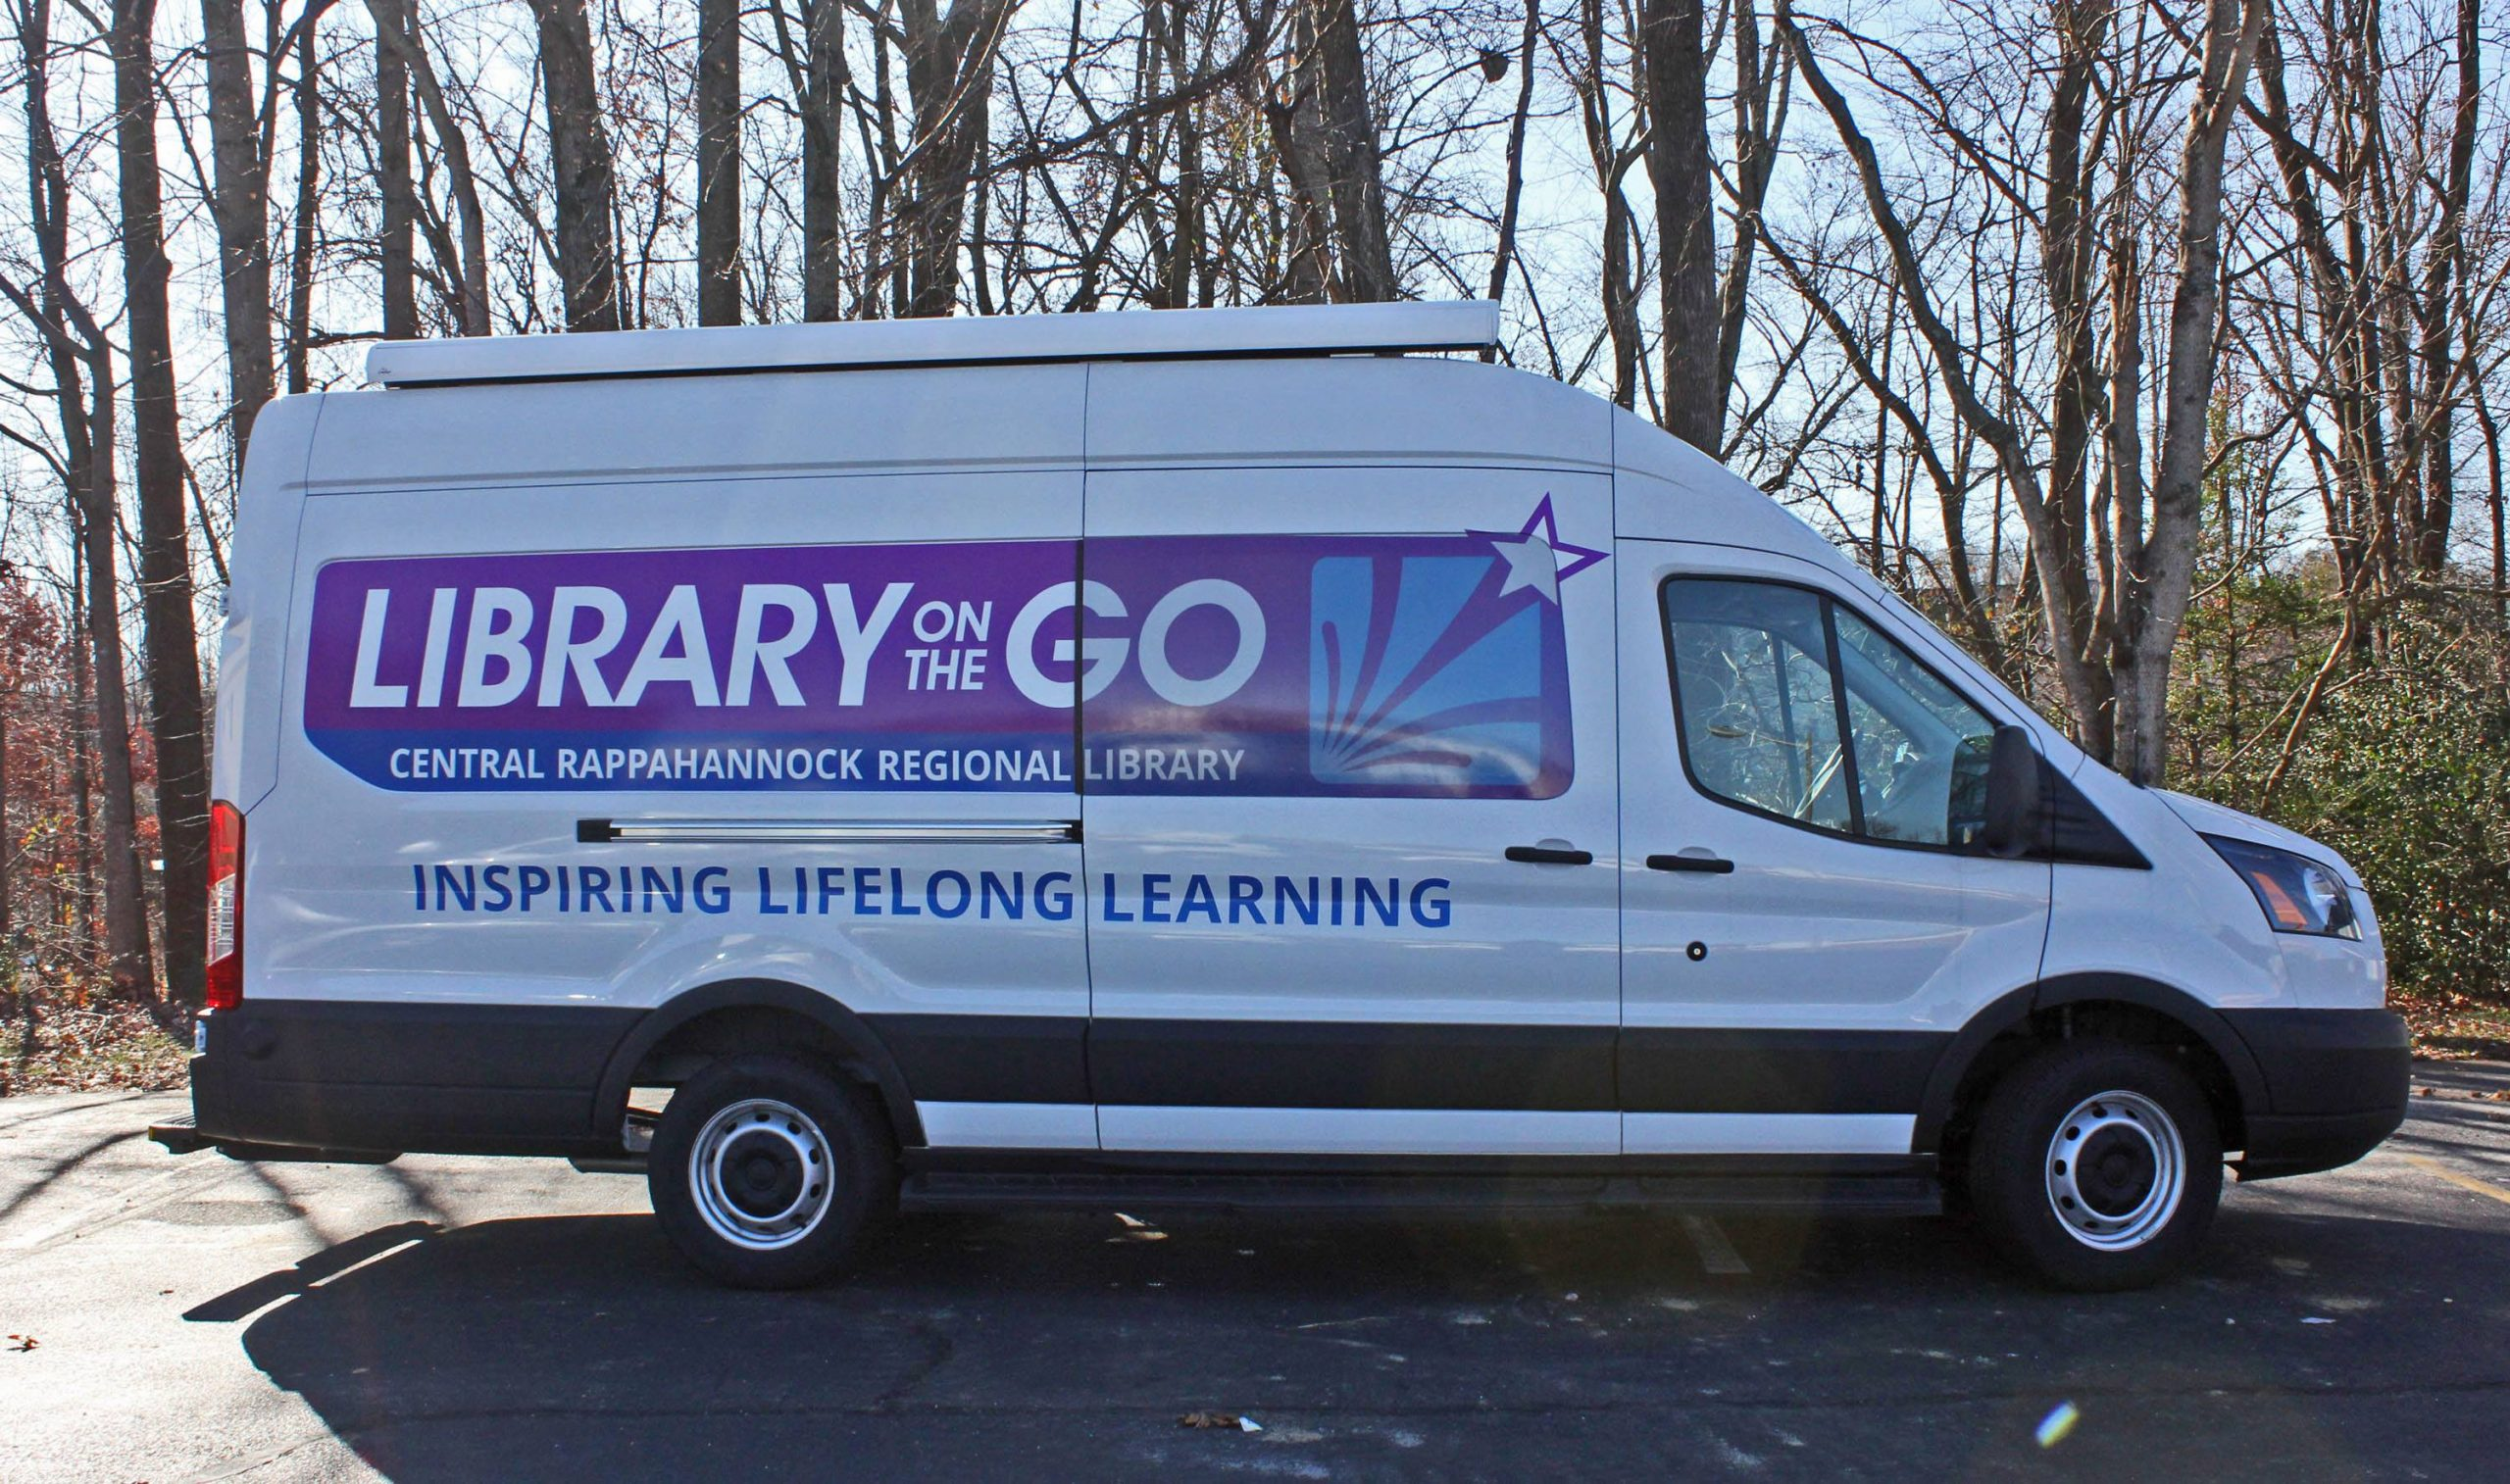 Public Library Spotlight: Library on the Go